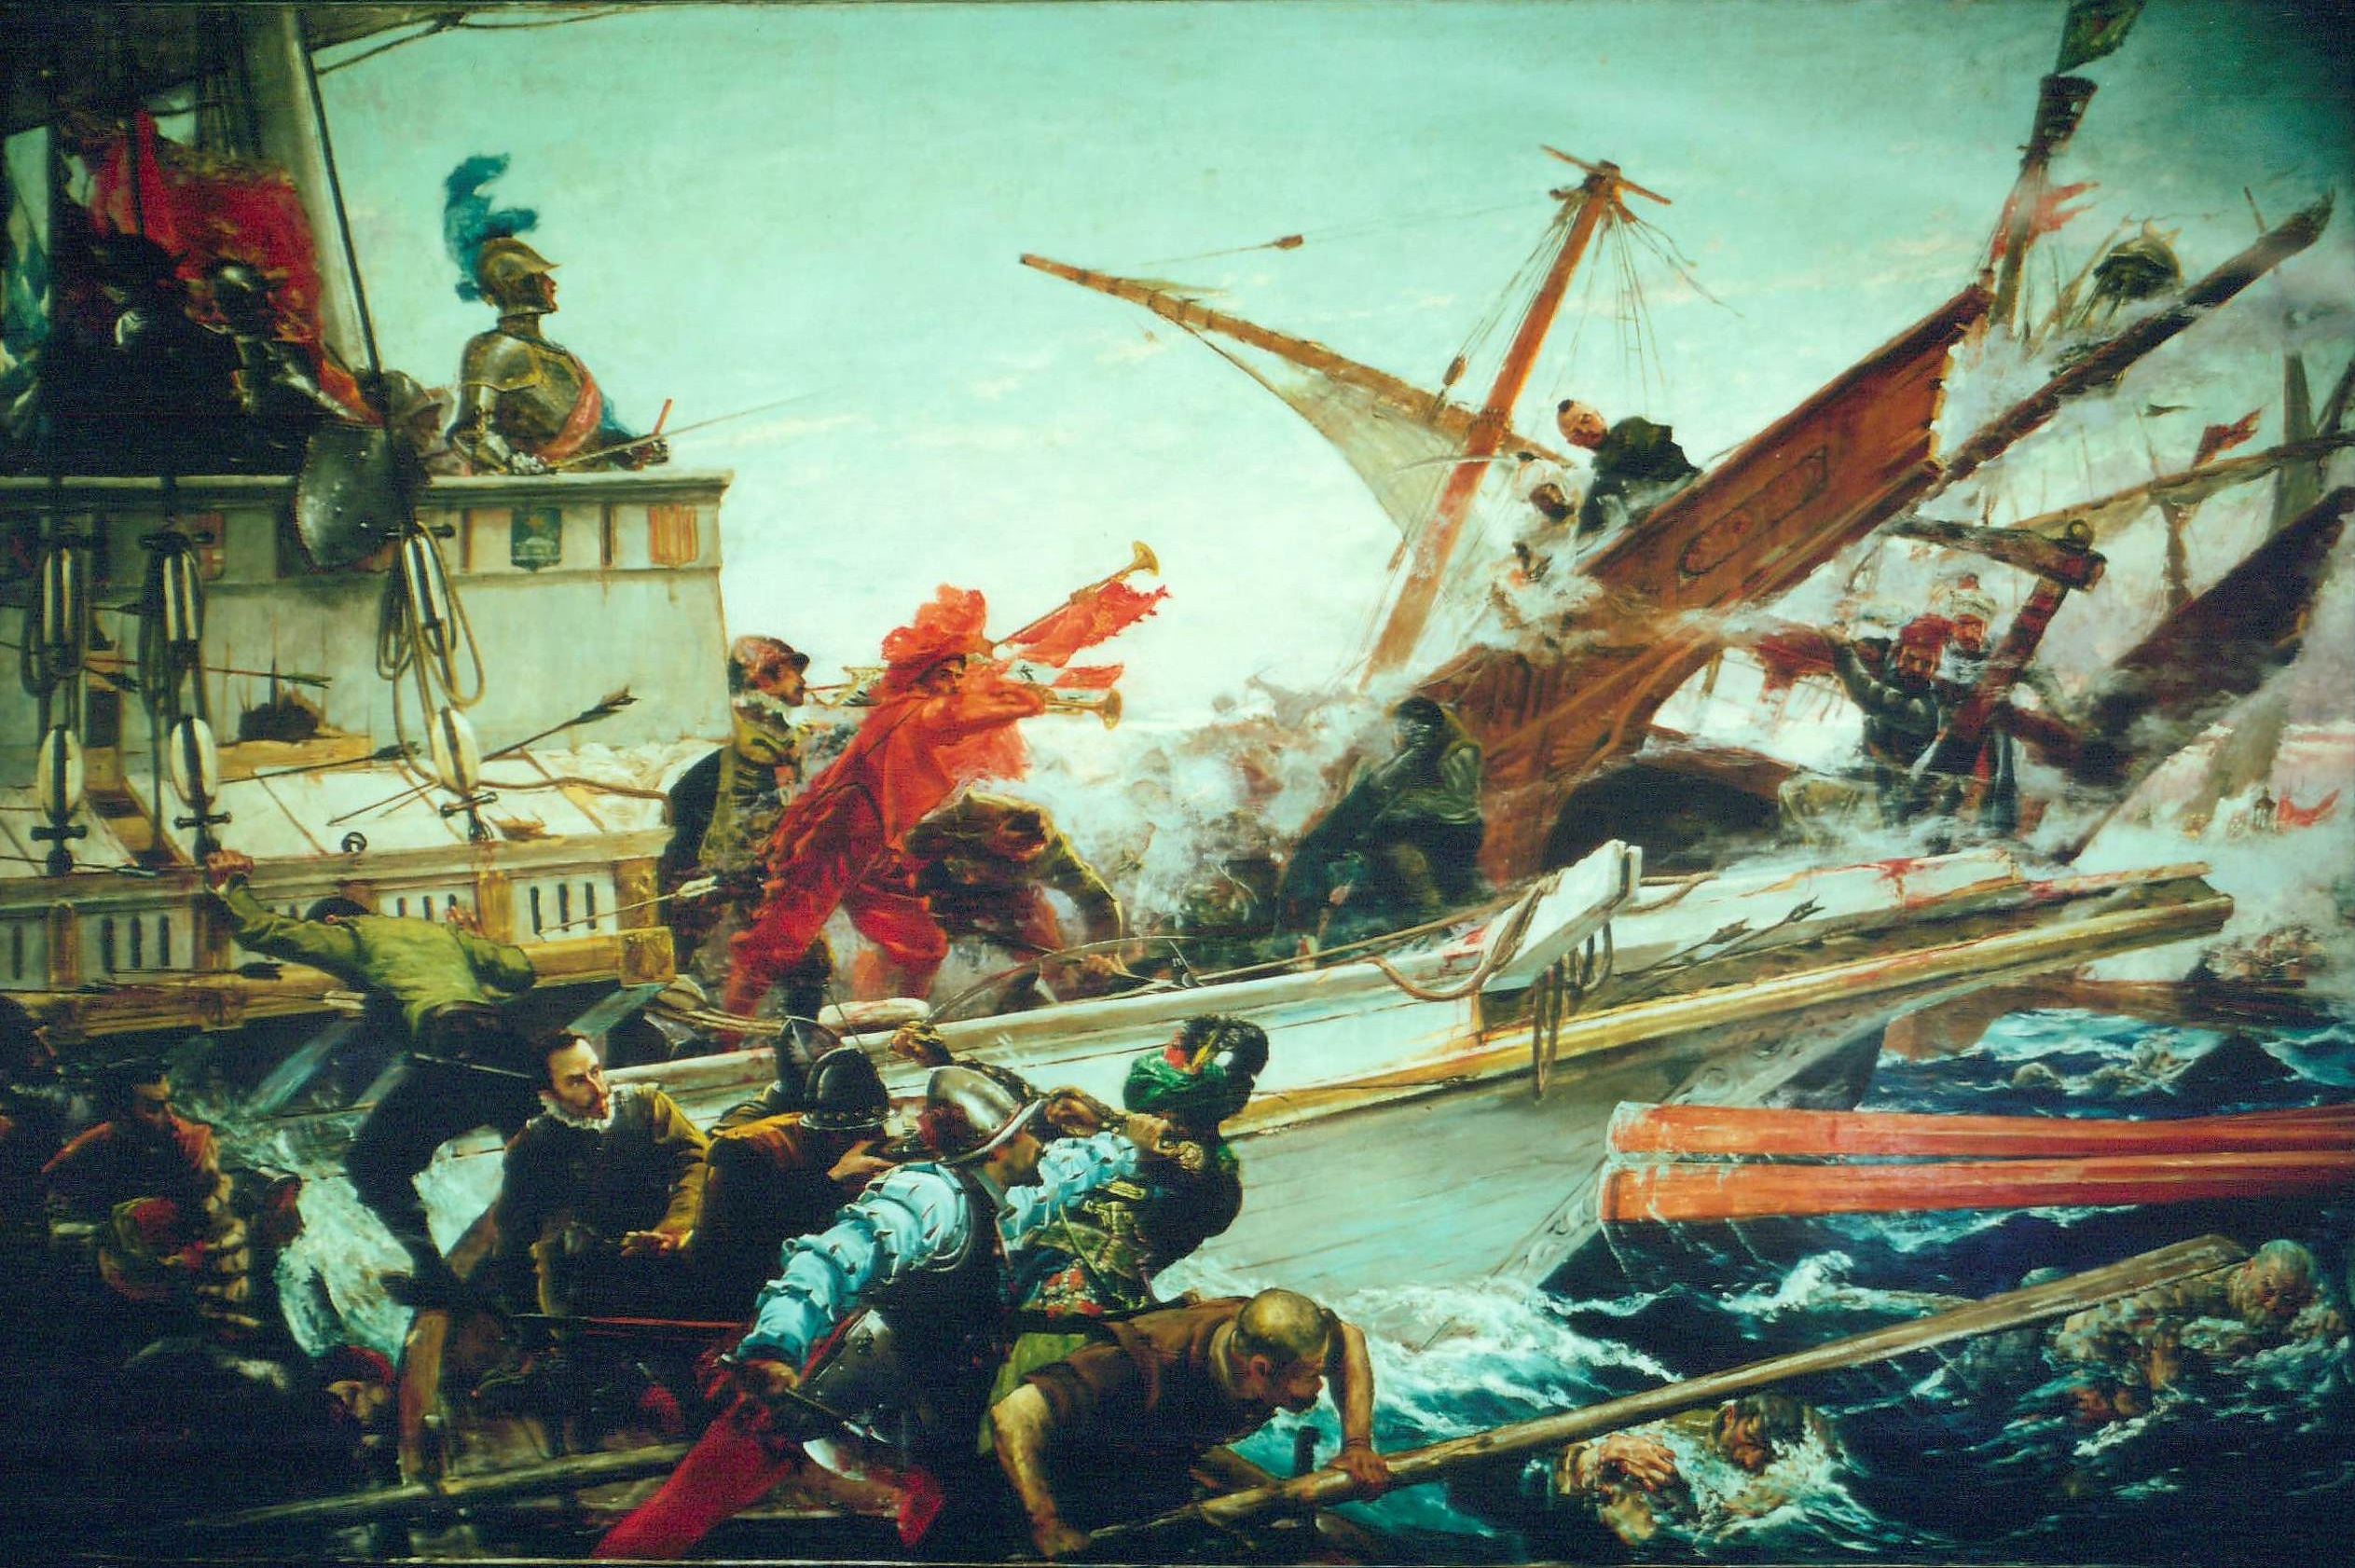 File:The Battle of Lepanto of 1571 full version by Juan Luna.jpg